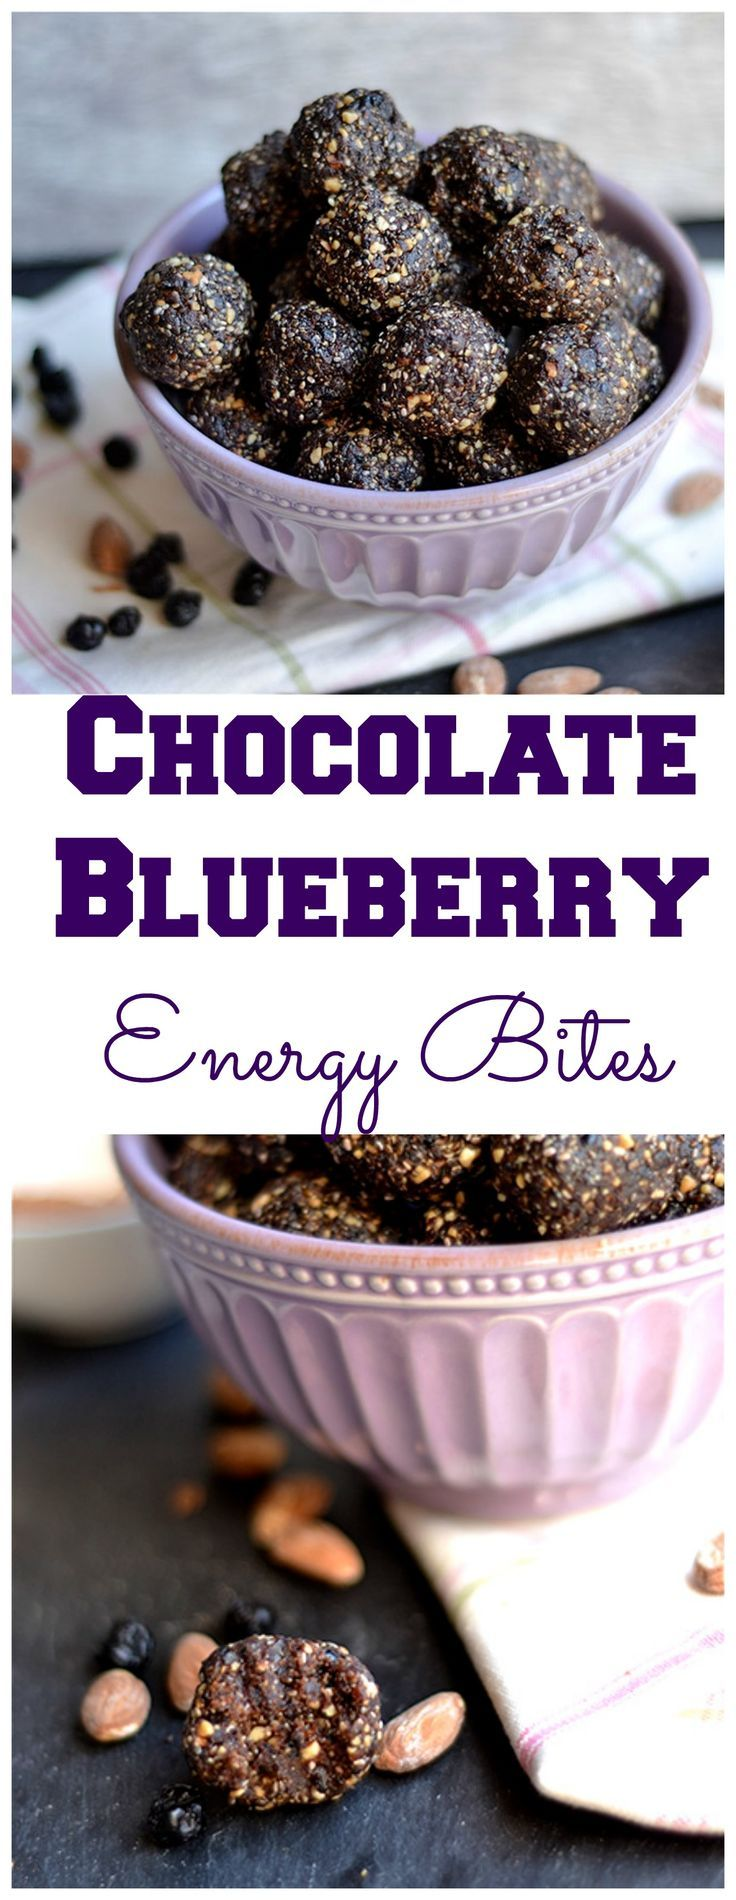 Super simple and nutrient dense energy bites that taste just like chocolate covered blueberries! Vegan, GF, and Paleo.